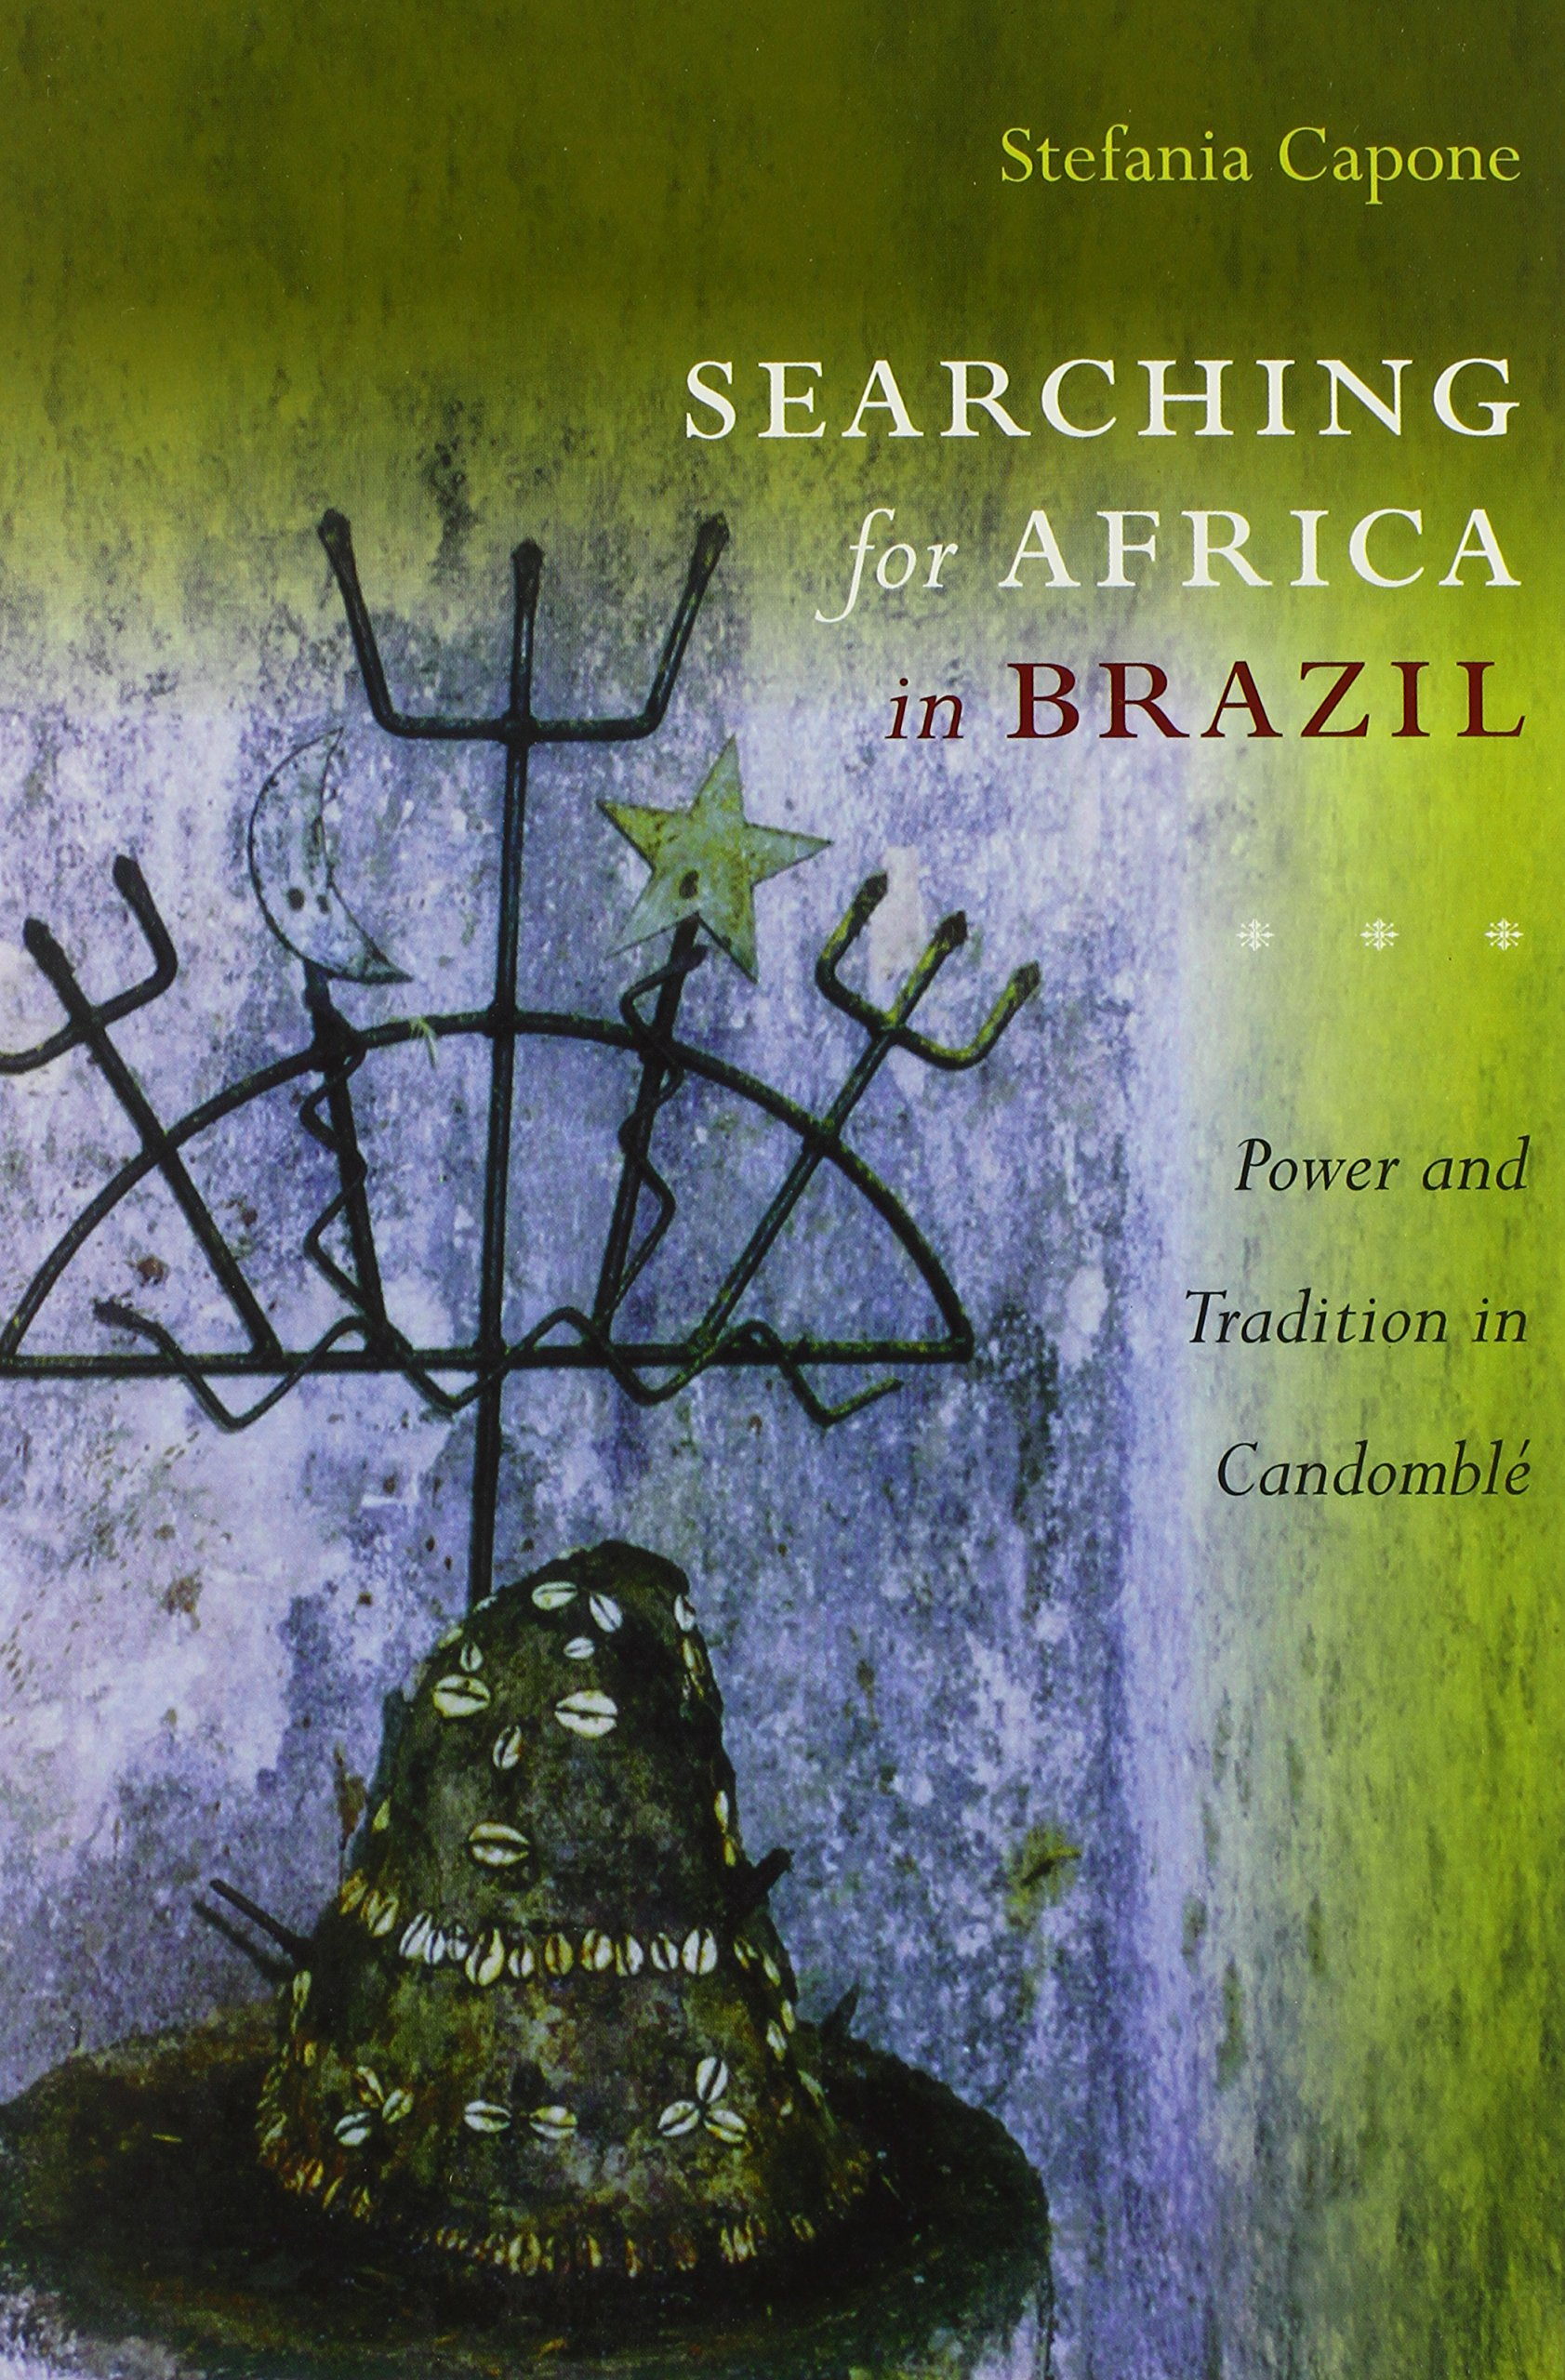 Searching for Africa in Brazil: Power and Tradition in